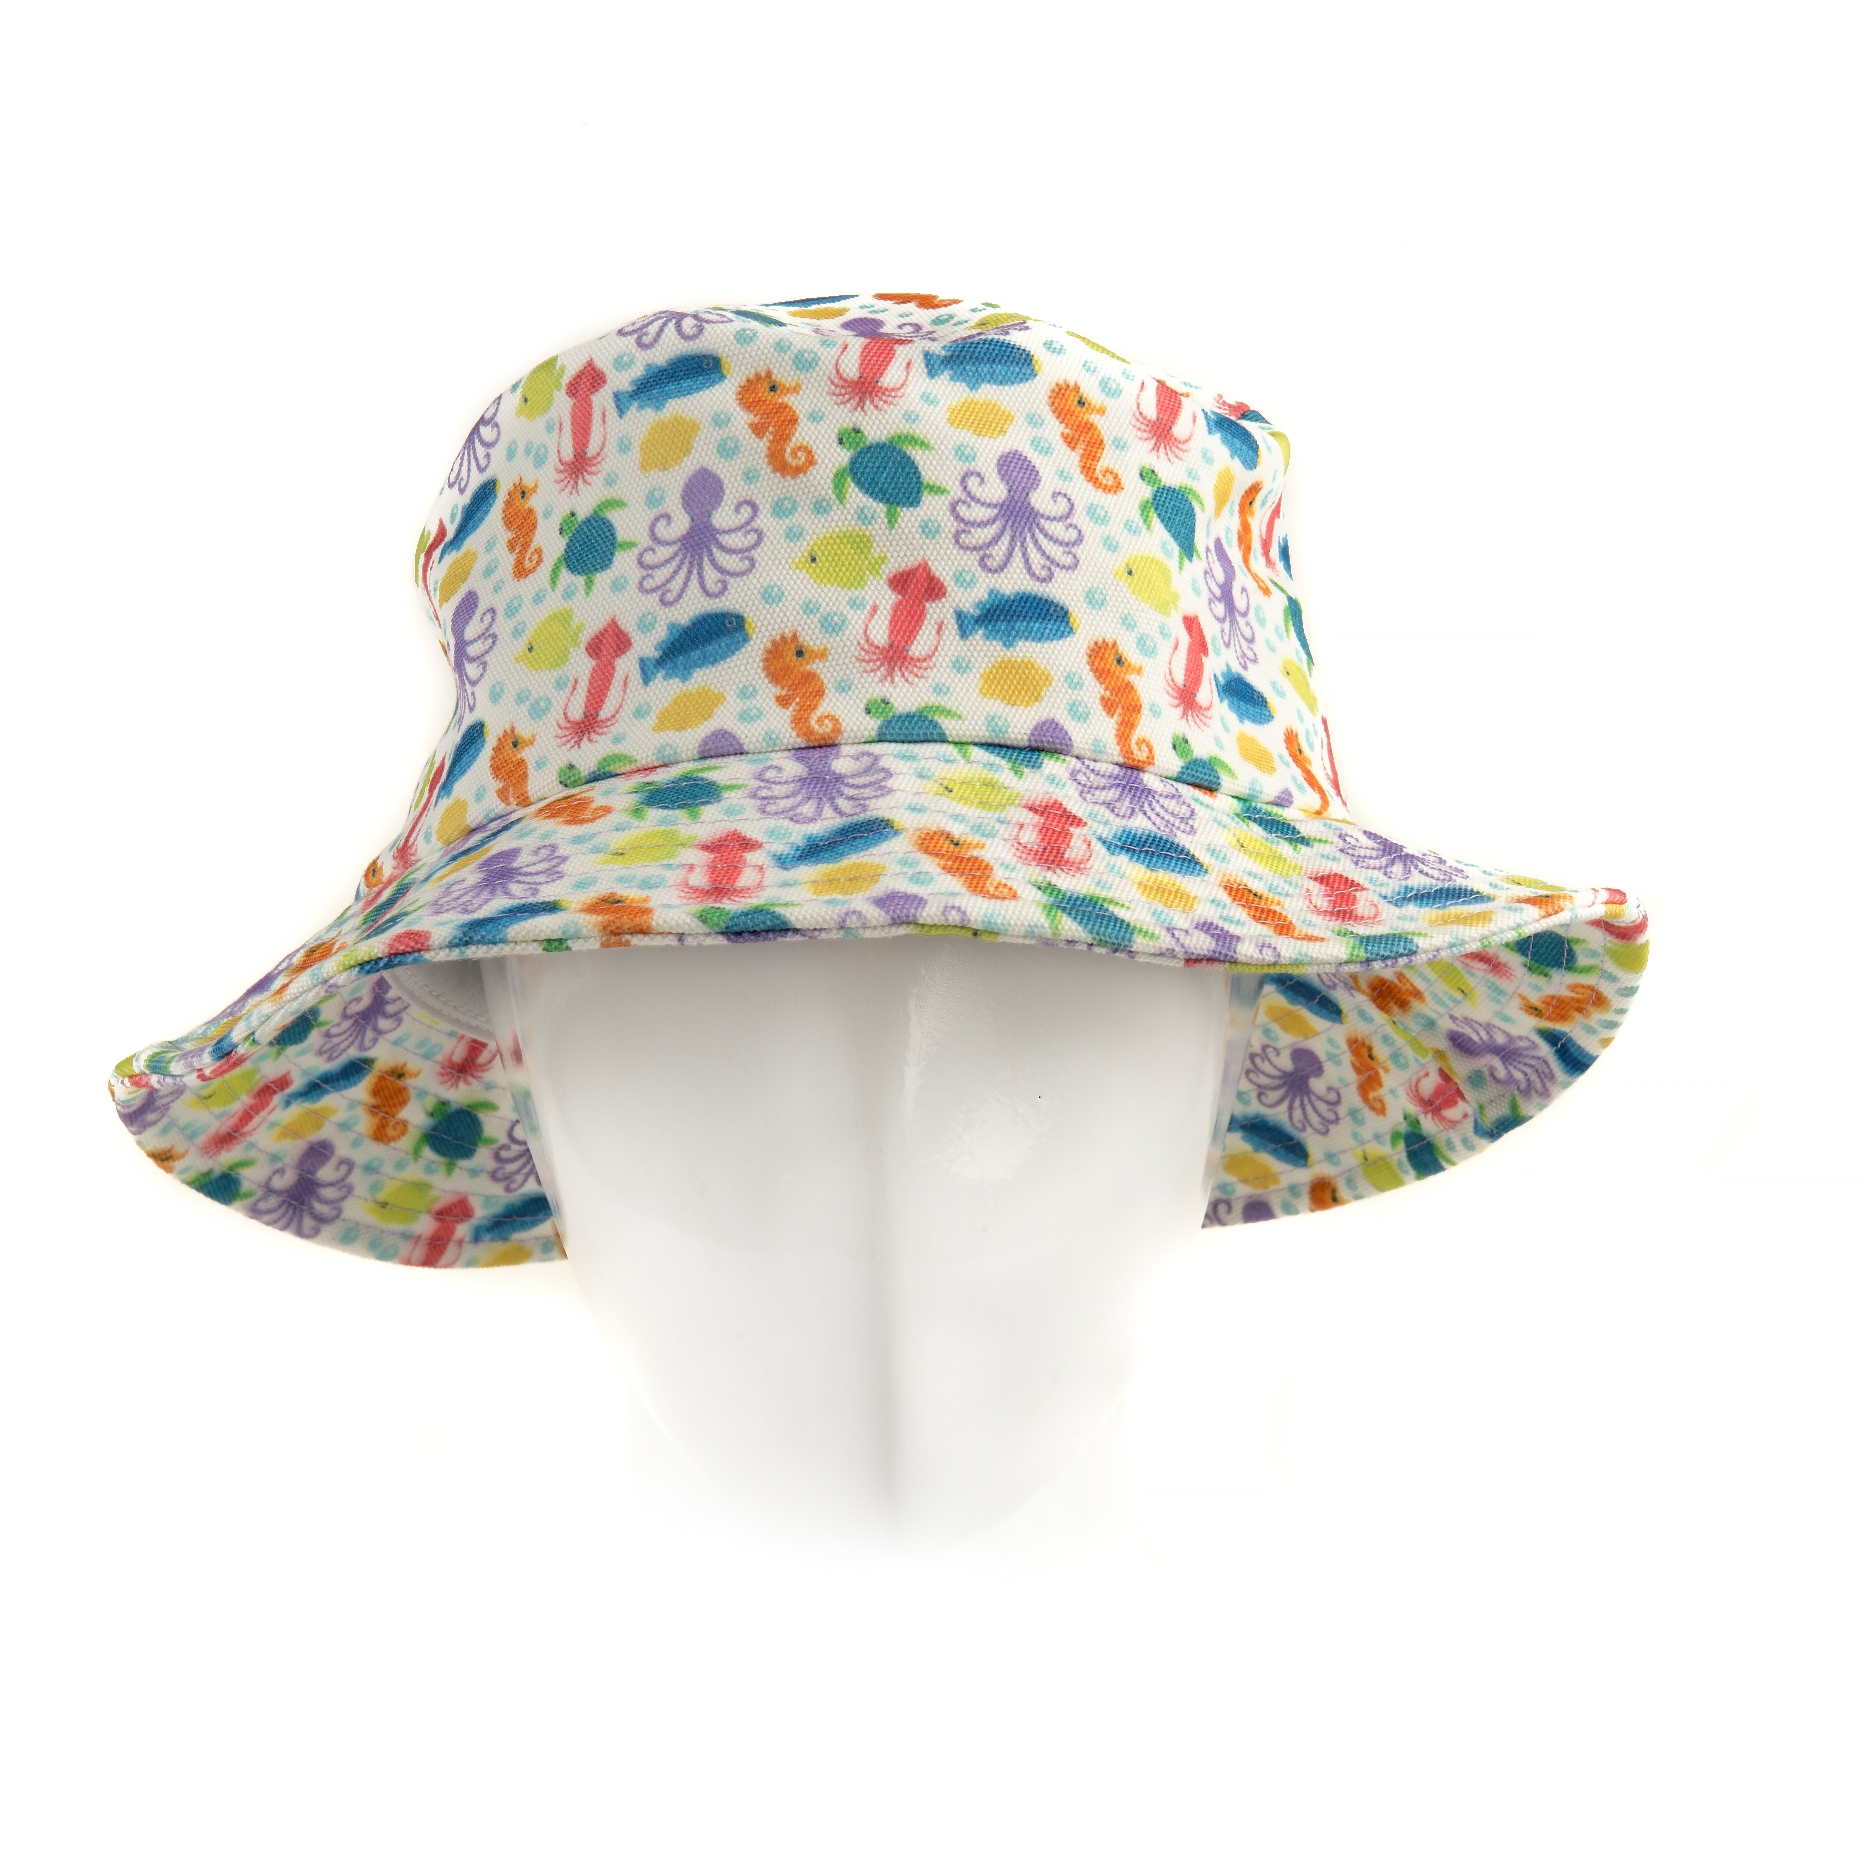 5deb9291274fb9 Kids Sea Animals Bucket Hat In White | SAFARI WONDERS